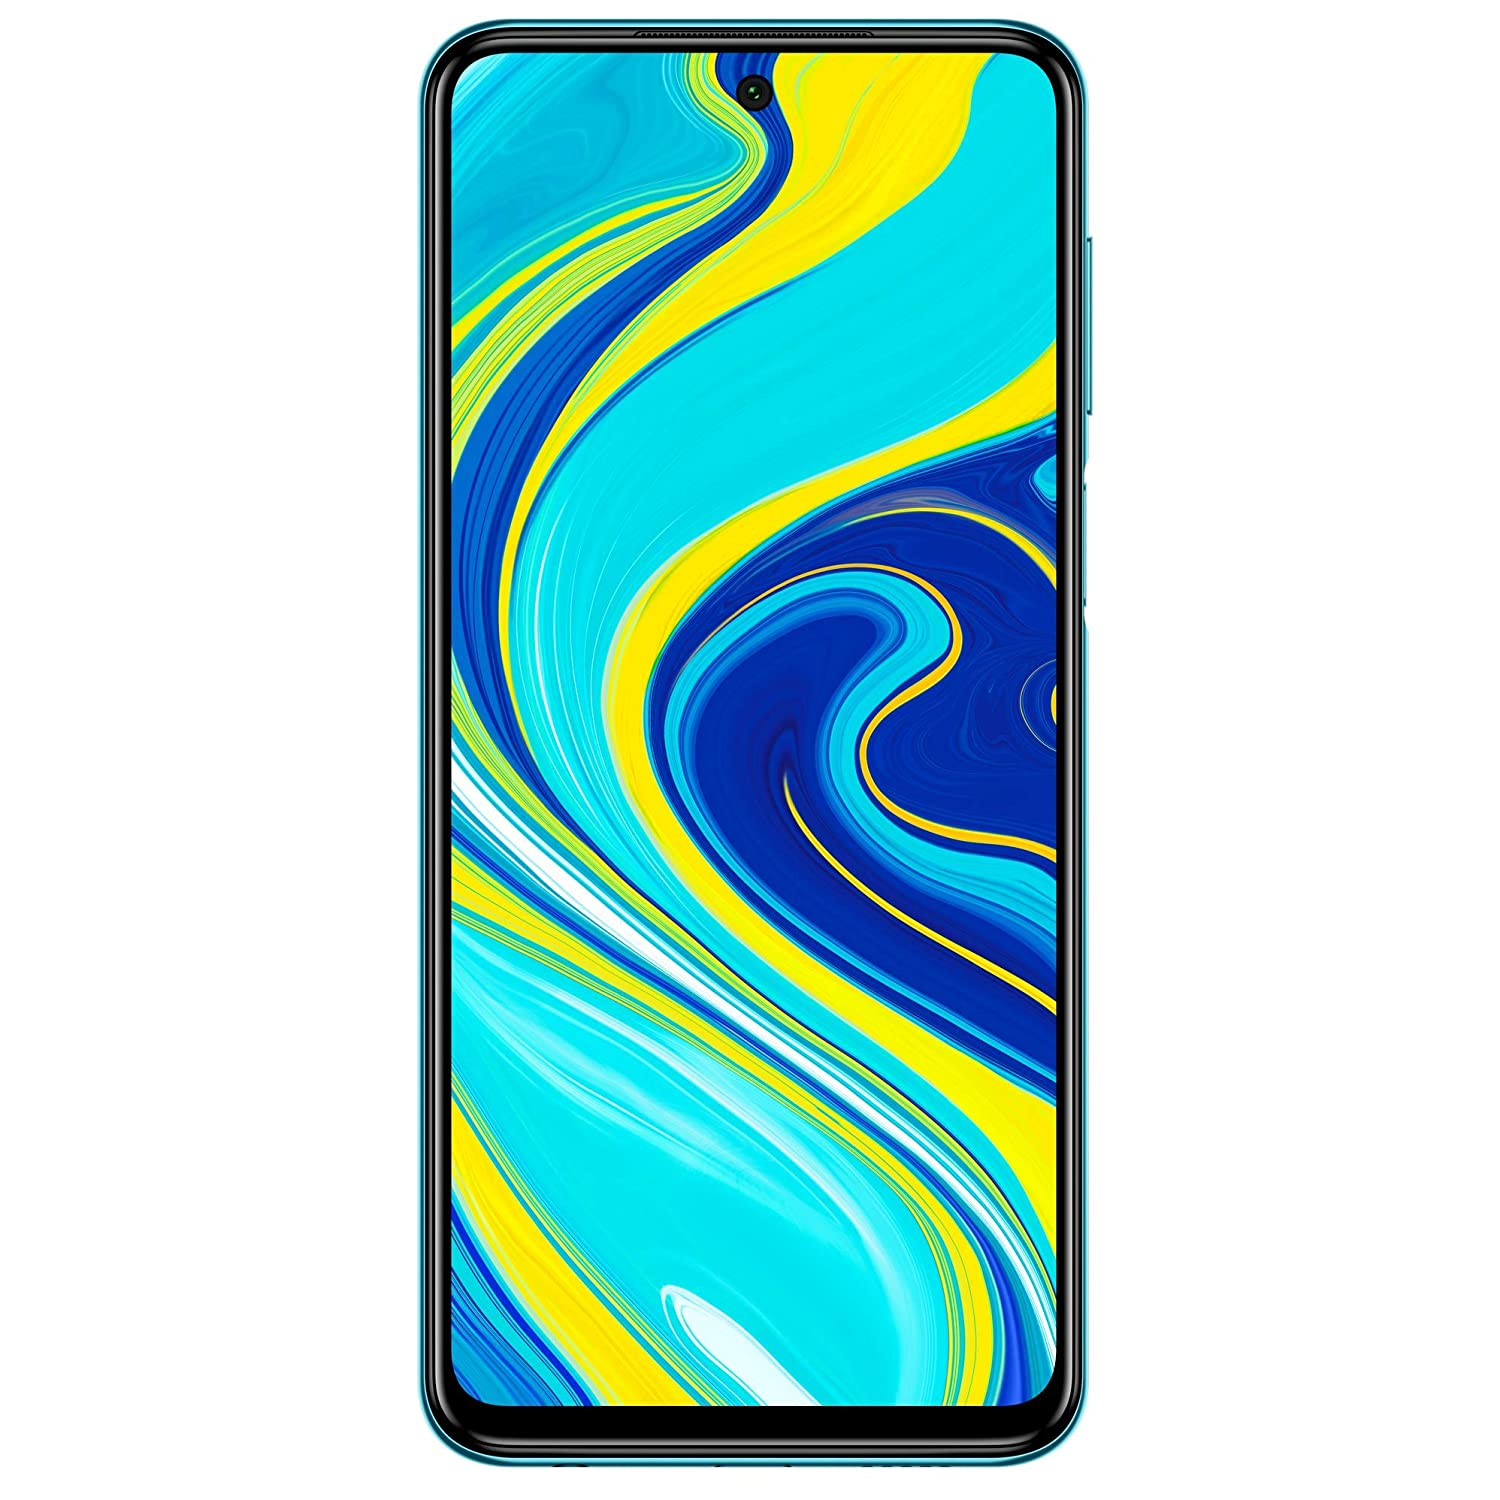 Redmi Note 9 Pro (Aurora Blue, 4GB RAM, 64GB Storage) - Latest 8nm Snapdragon 720G & Alexa Hands-Free | 6 Months No Cost EMI